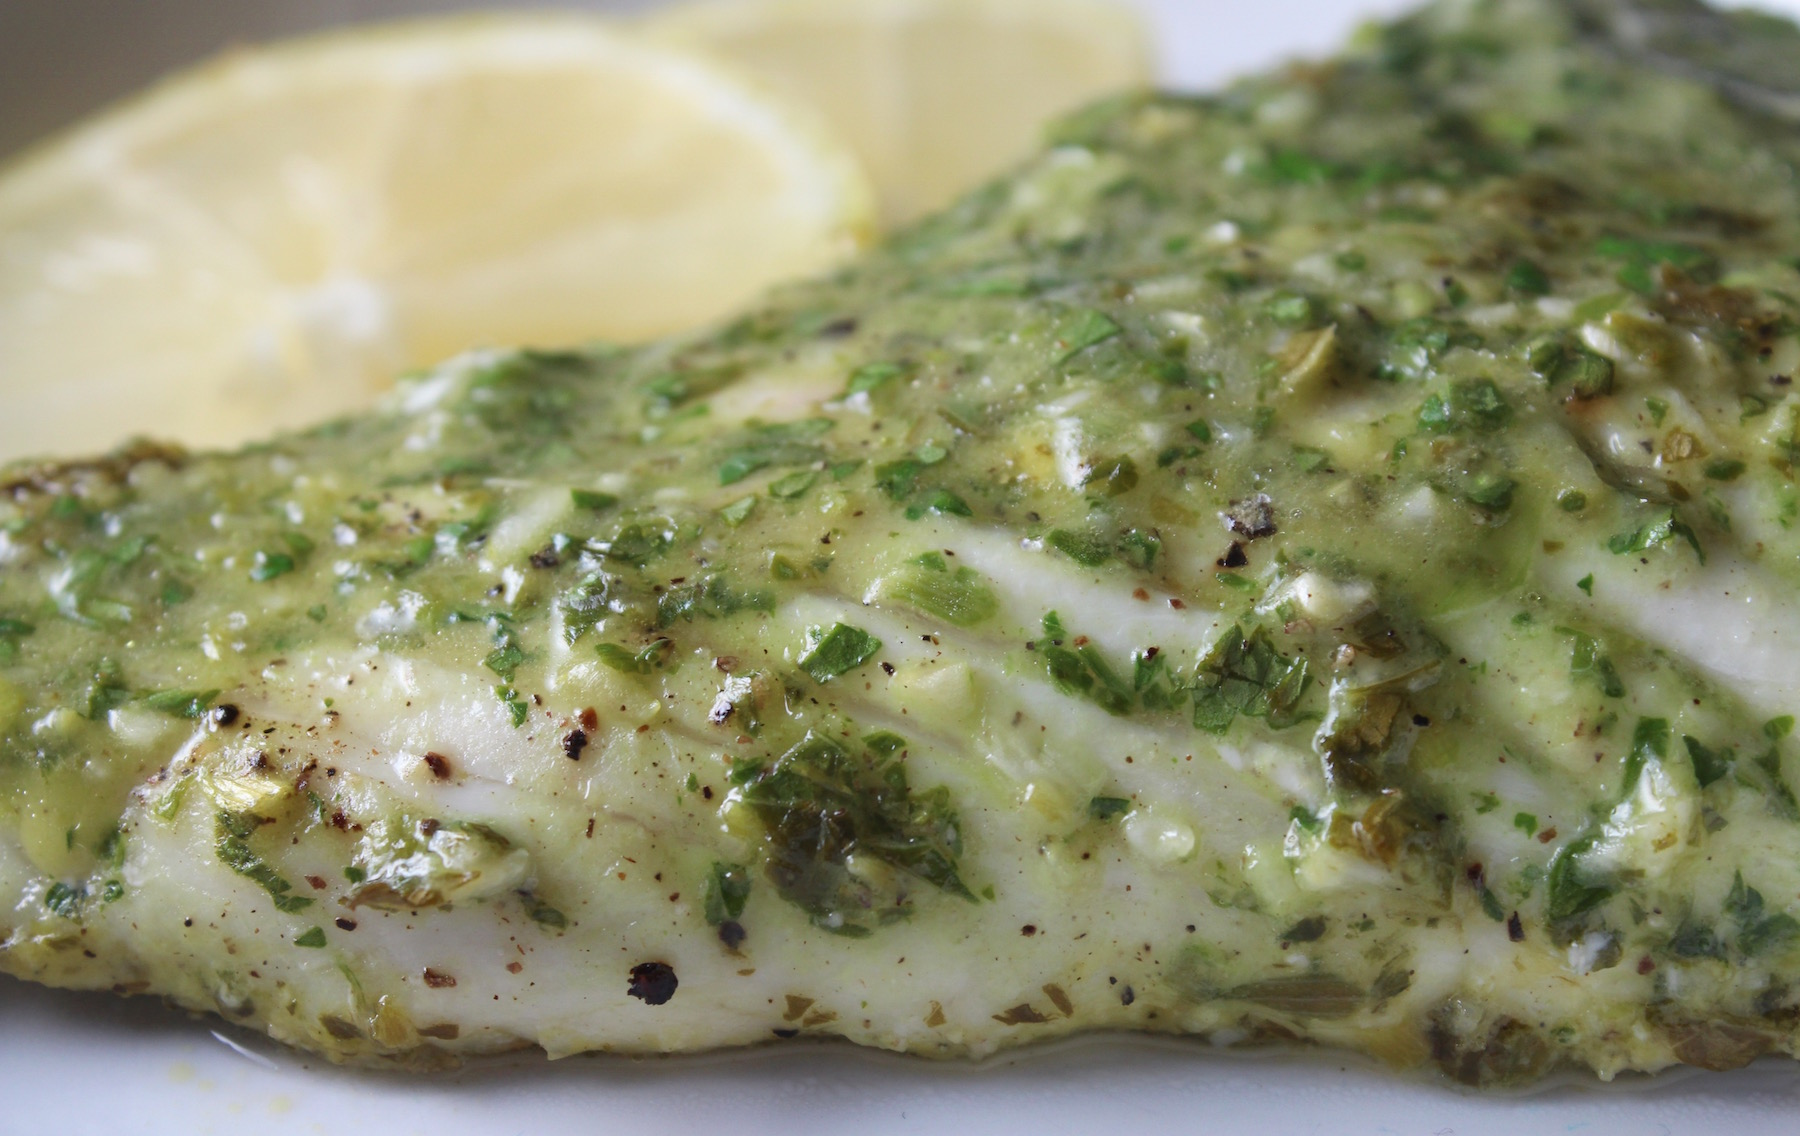 Lemon Parsley Grouper with Lemons